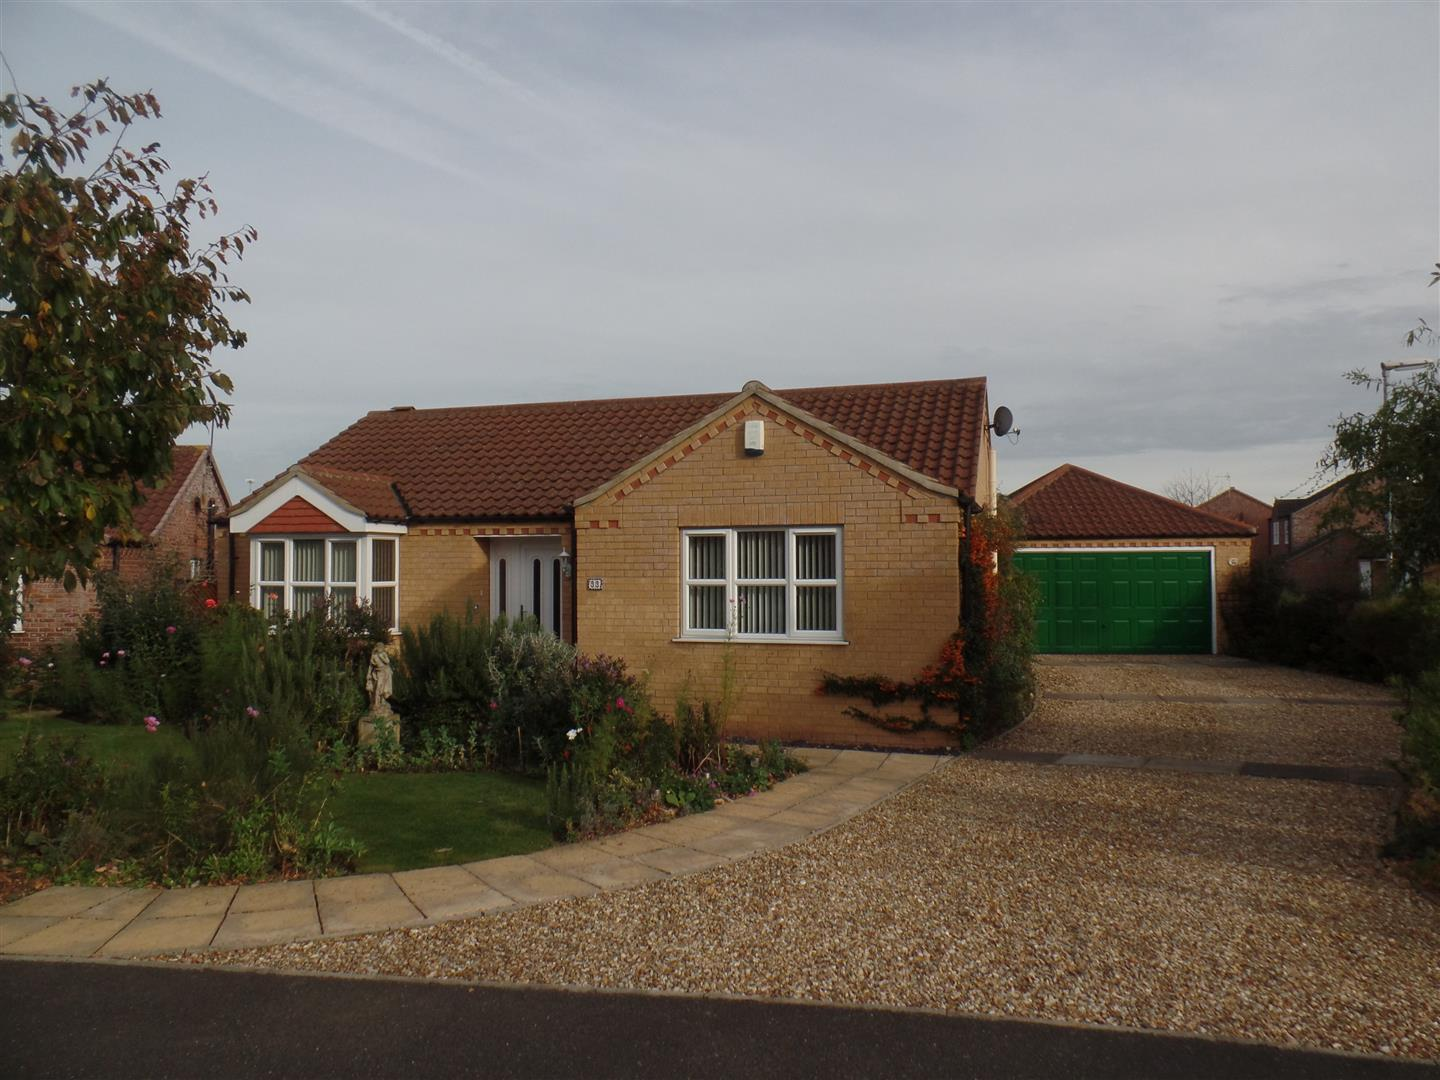 3 Bedrooms Property for sale in Headland Way, Navenby, Lincoln